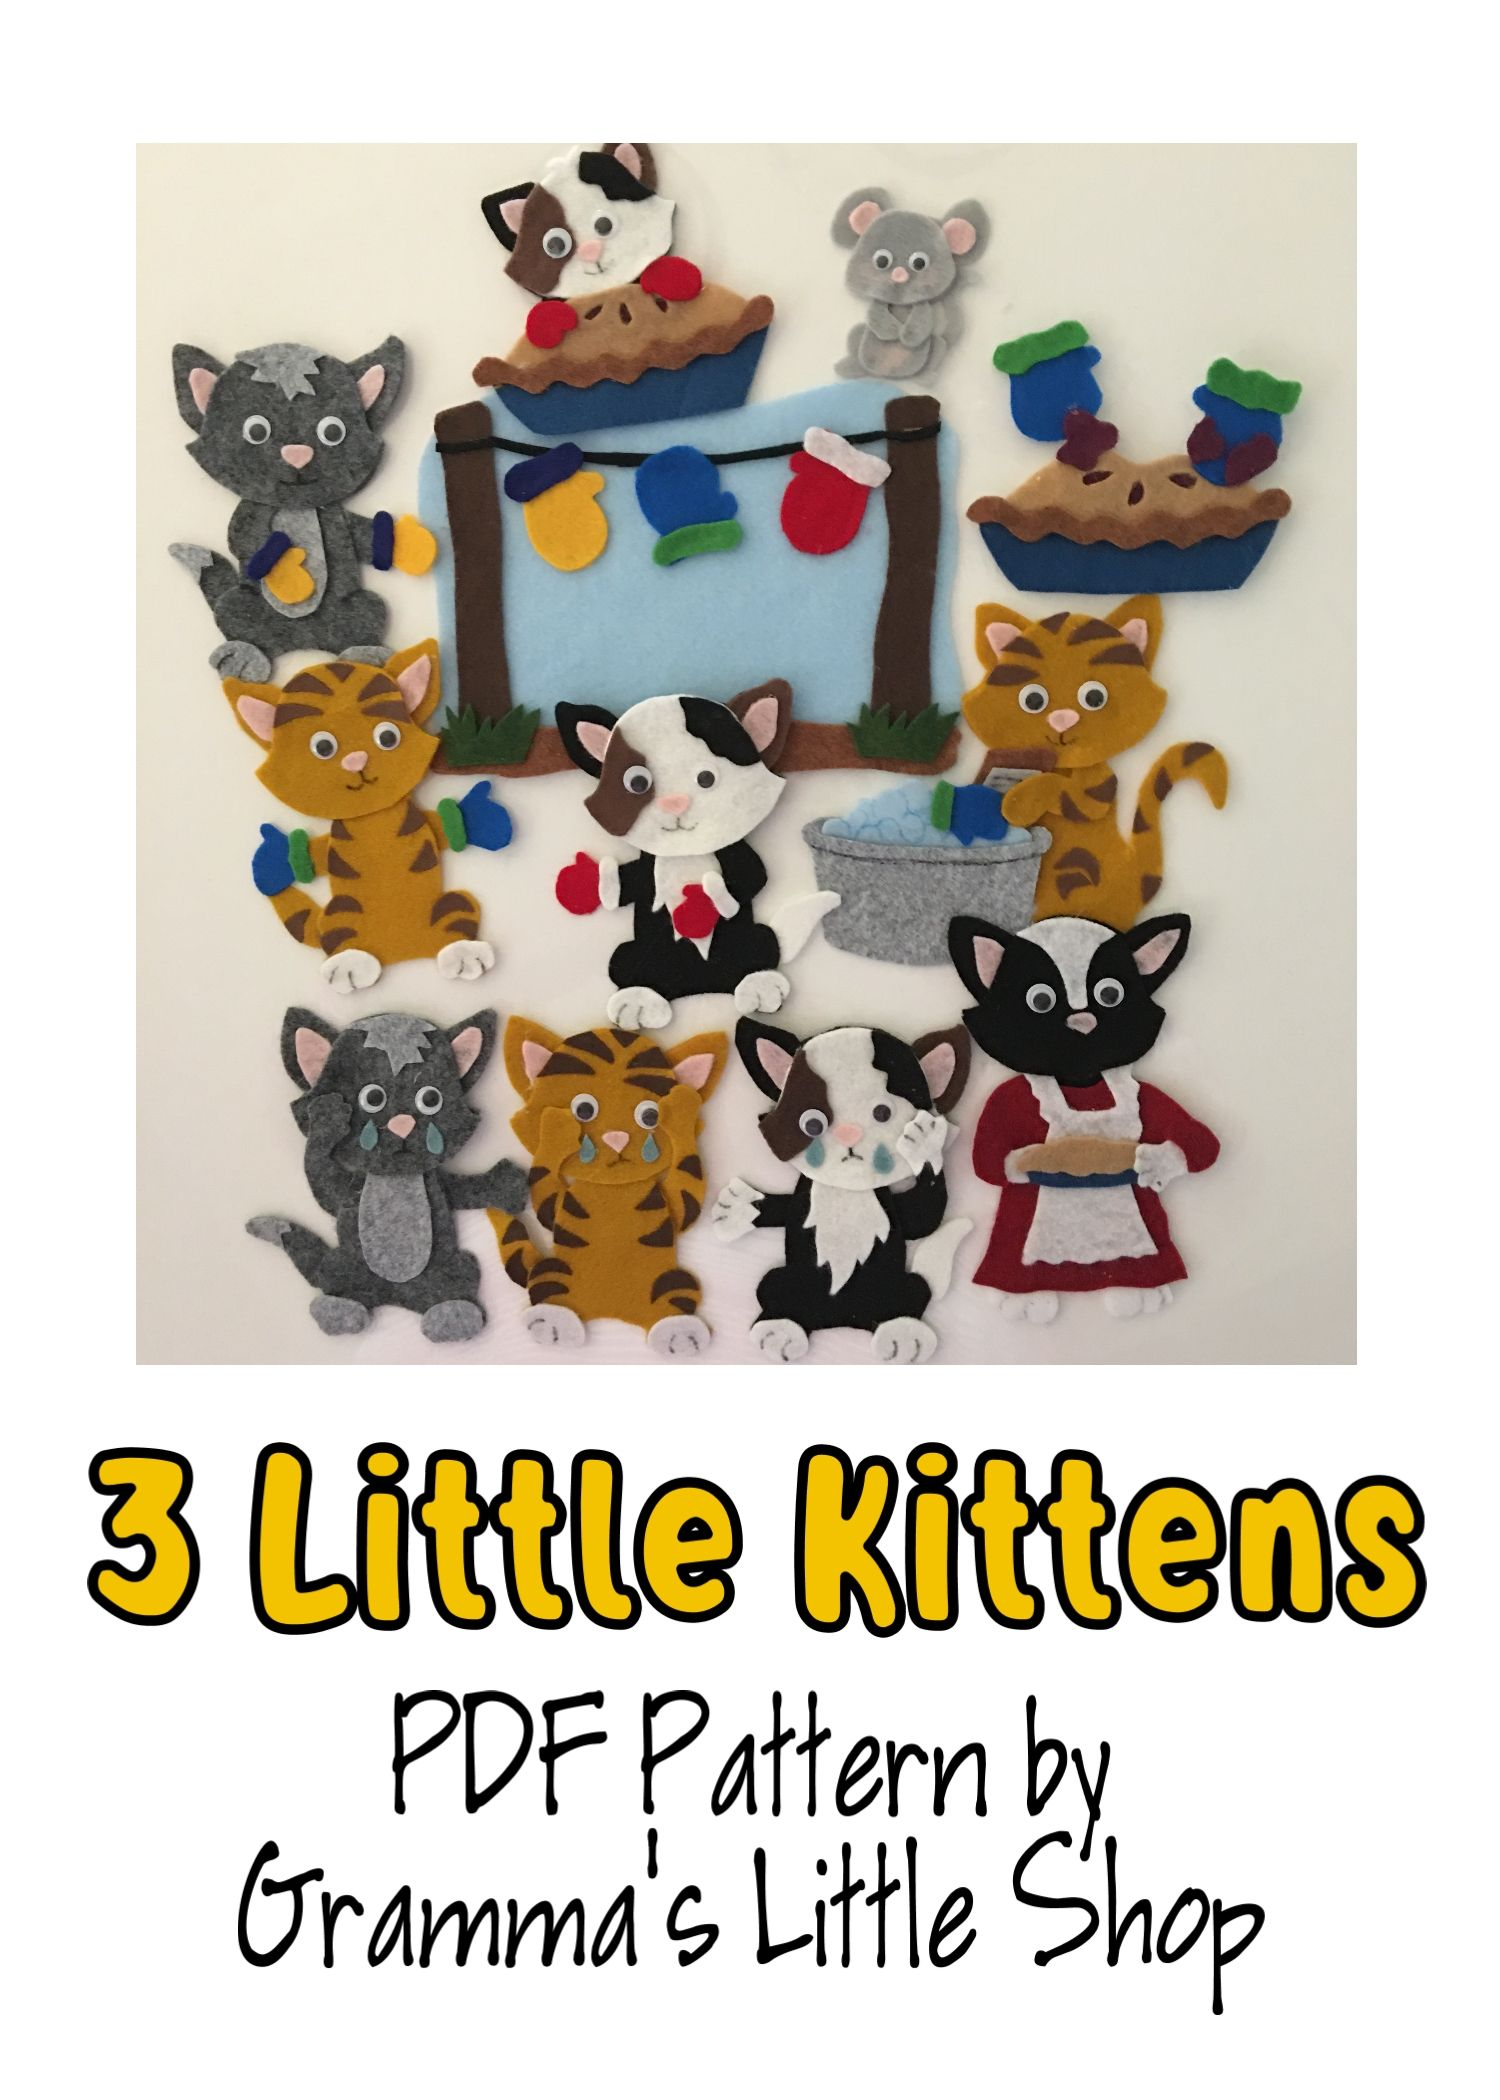 3 Little Kittens Felt Story Board Pattern In 2020 Little Kittens Felt Stories Pattern